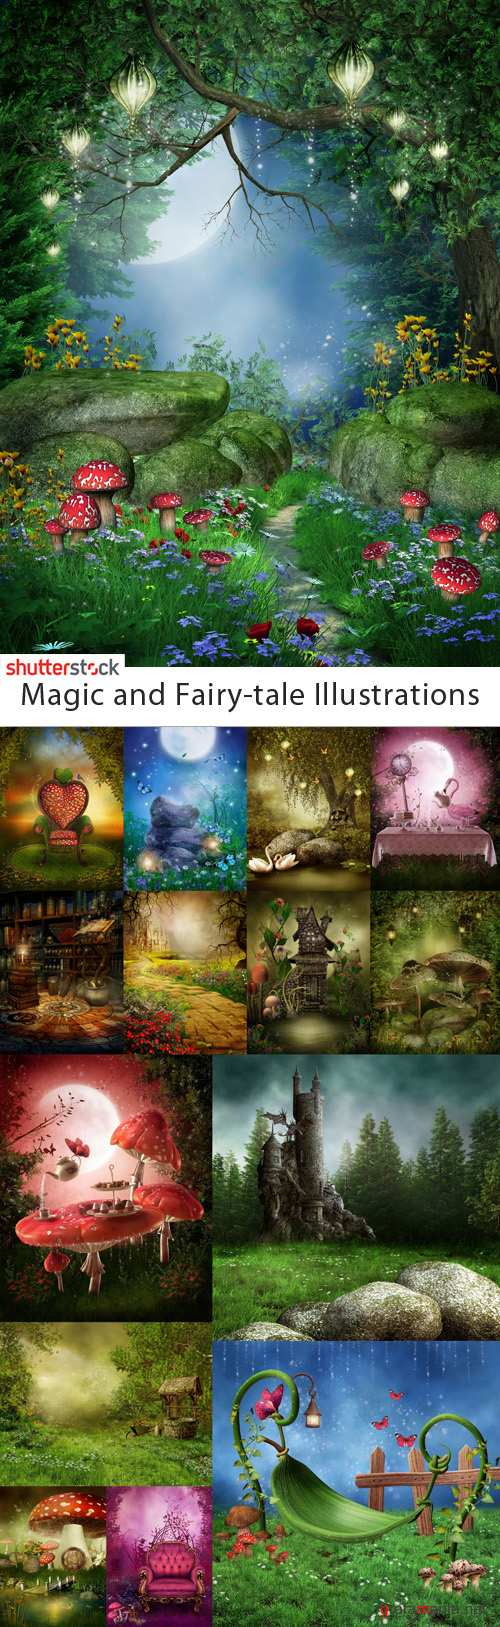 Magic and Fairy-tale Illustrations - 25 HQ JPEG Stock Images S